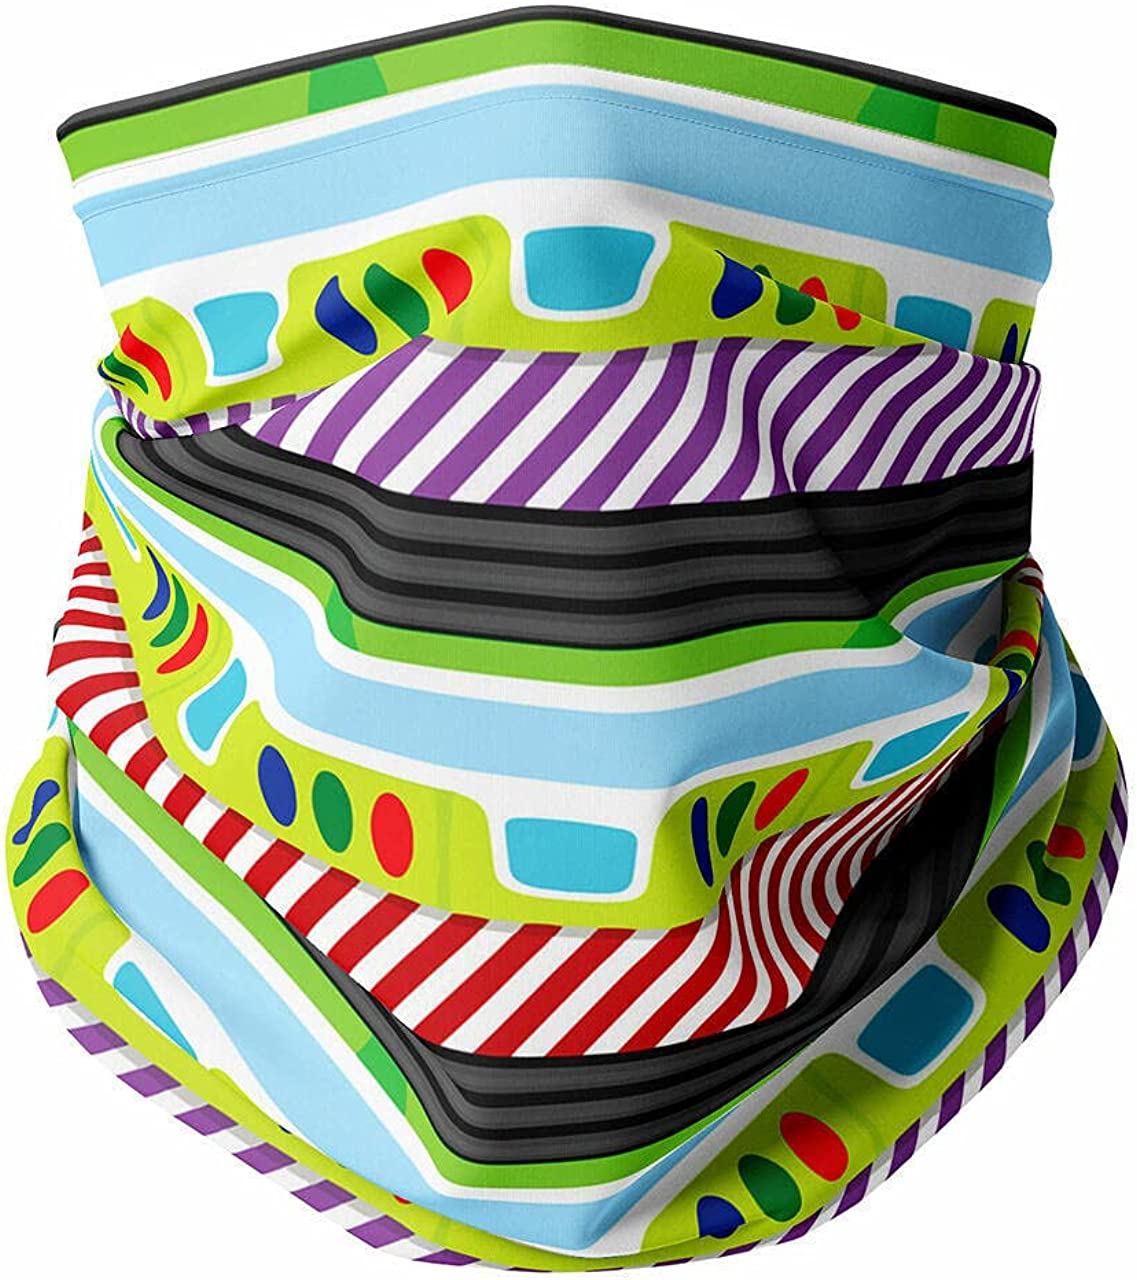 Neck Gaiter Face Covering - Buzz Lightyear